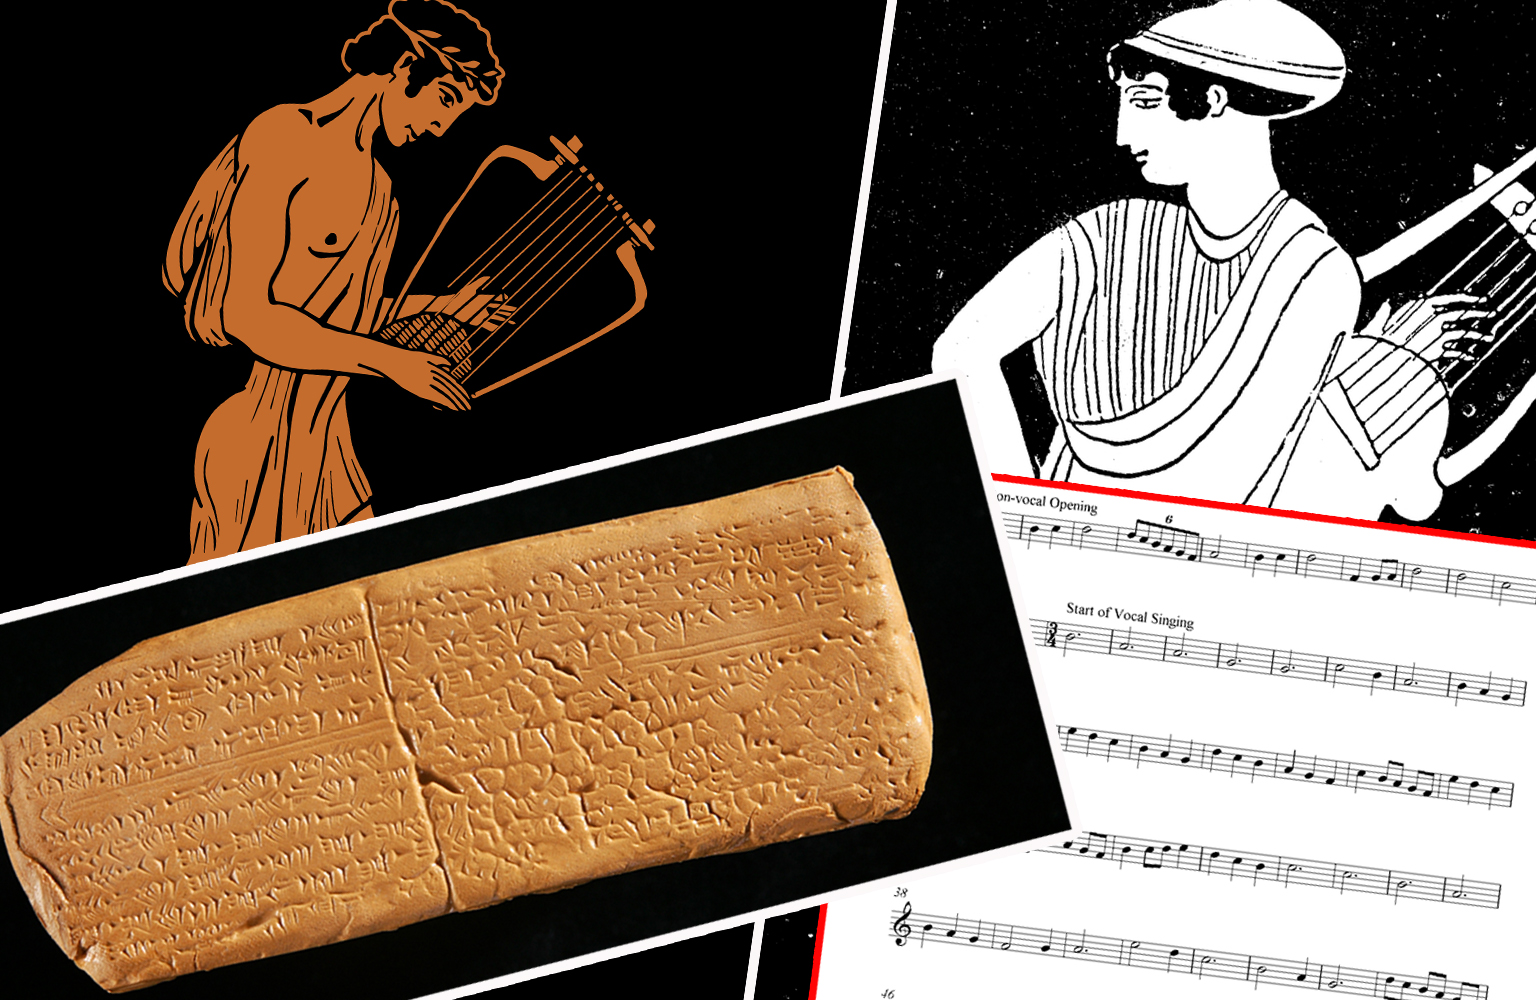 Oldest song melody. Hurrian hymn